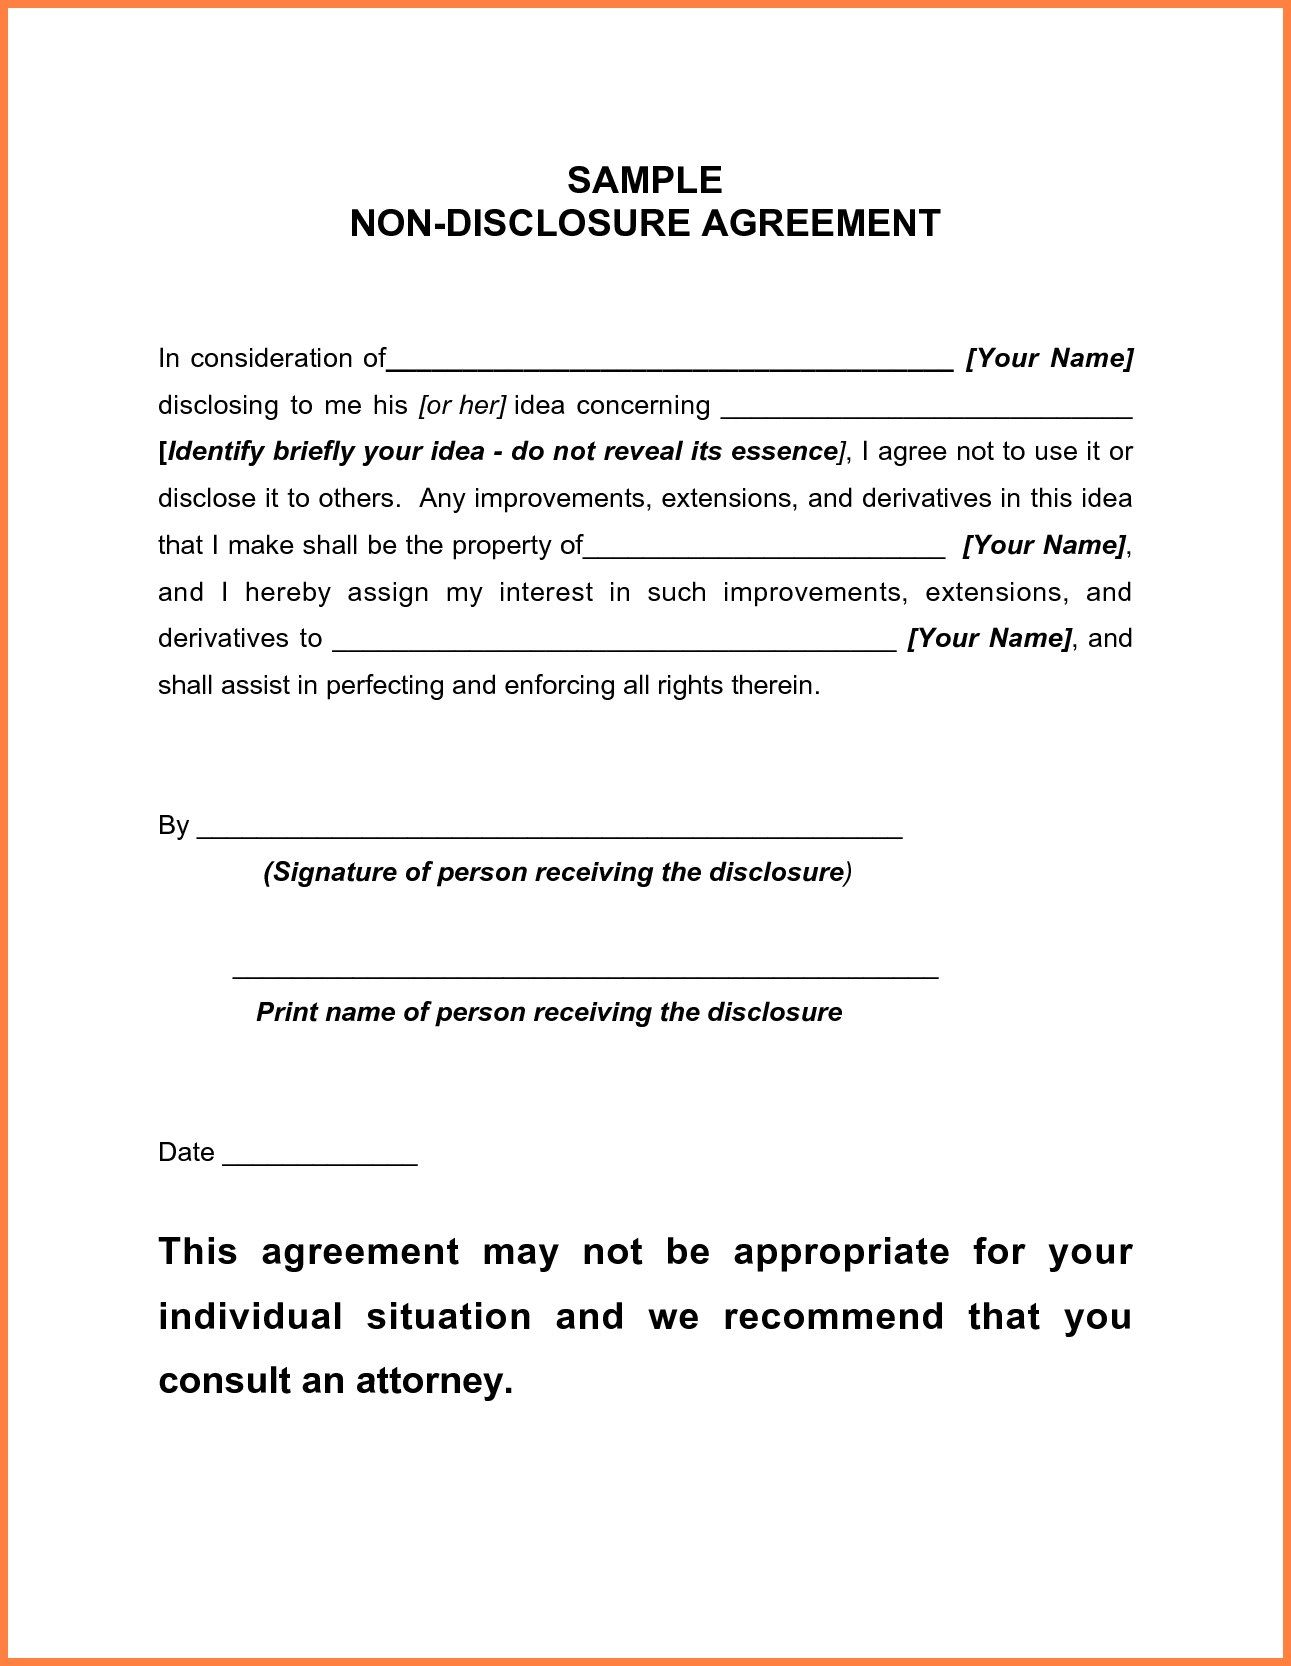 Basic Non Disclosure Agreement Emmamcintyrephotography With Standard Confidentiality Agreement Template 10 Non Disclosure Agreement Contract Template Words